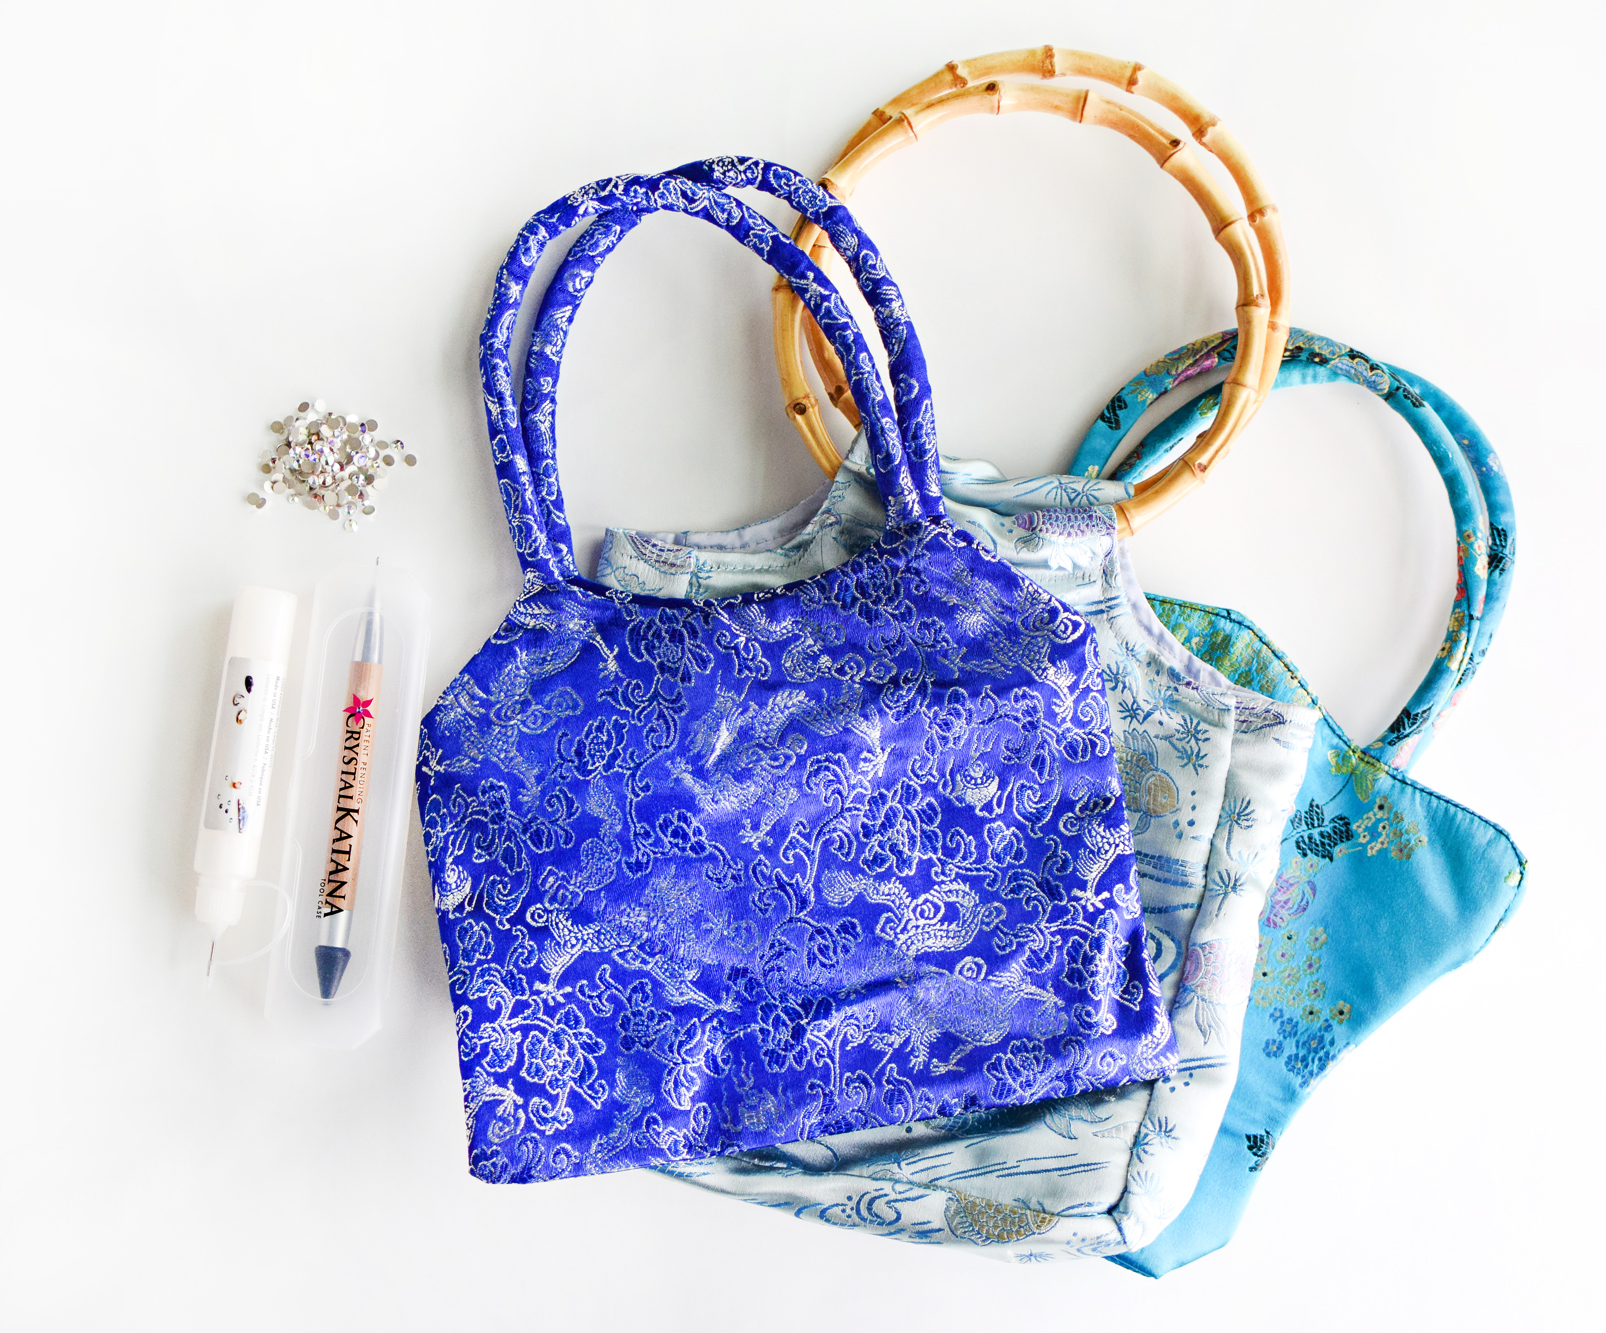 DIY Sparkly Upcycled Purses